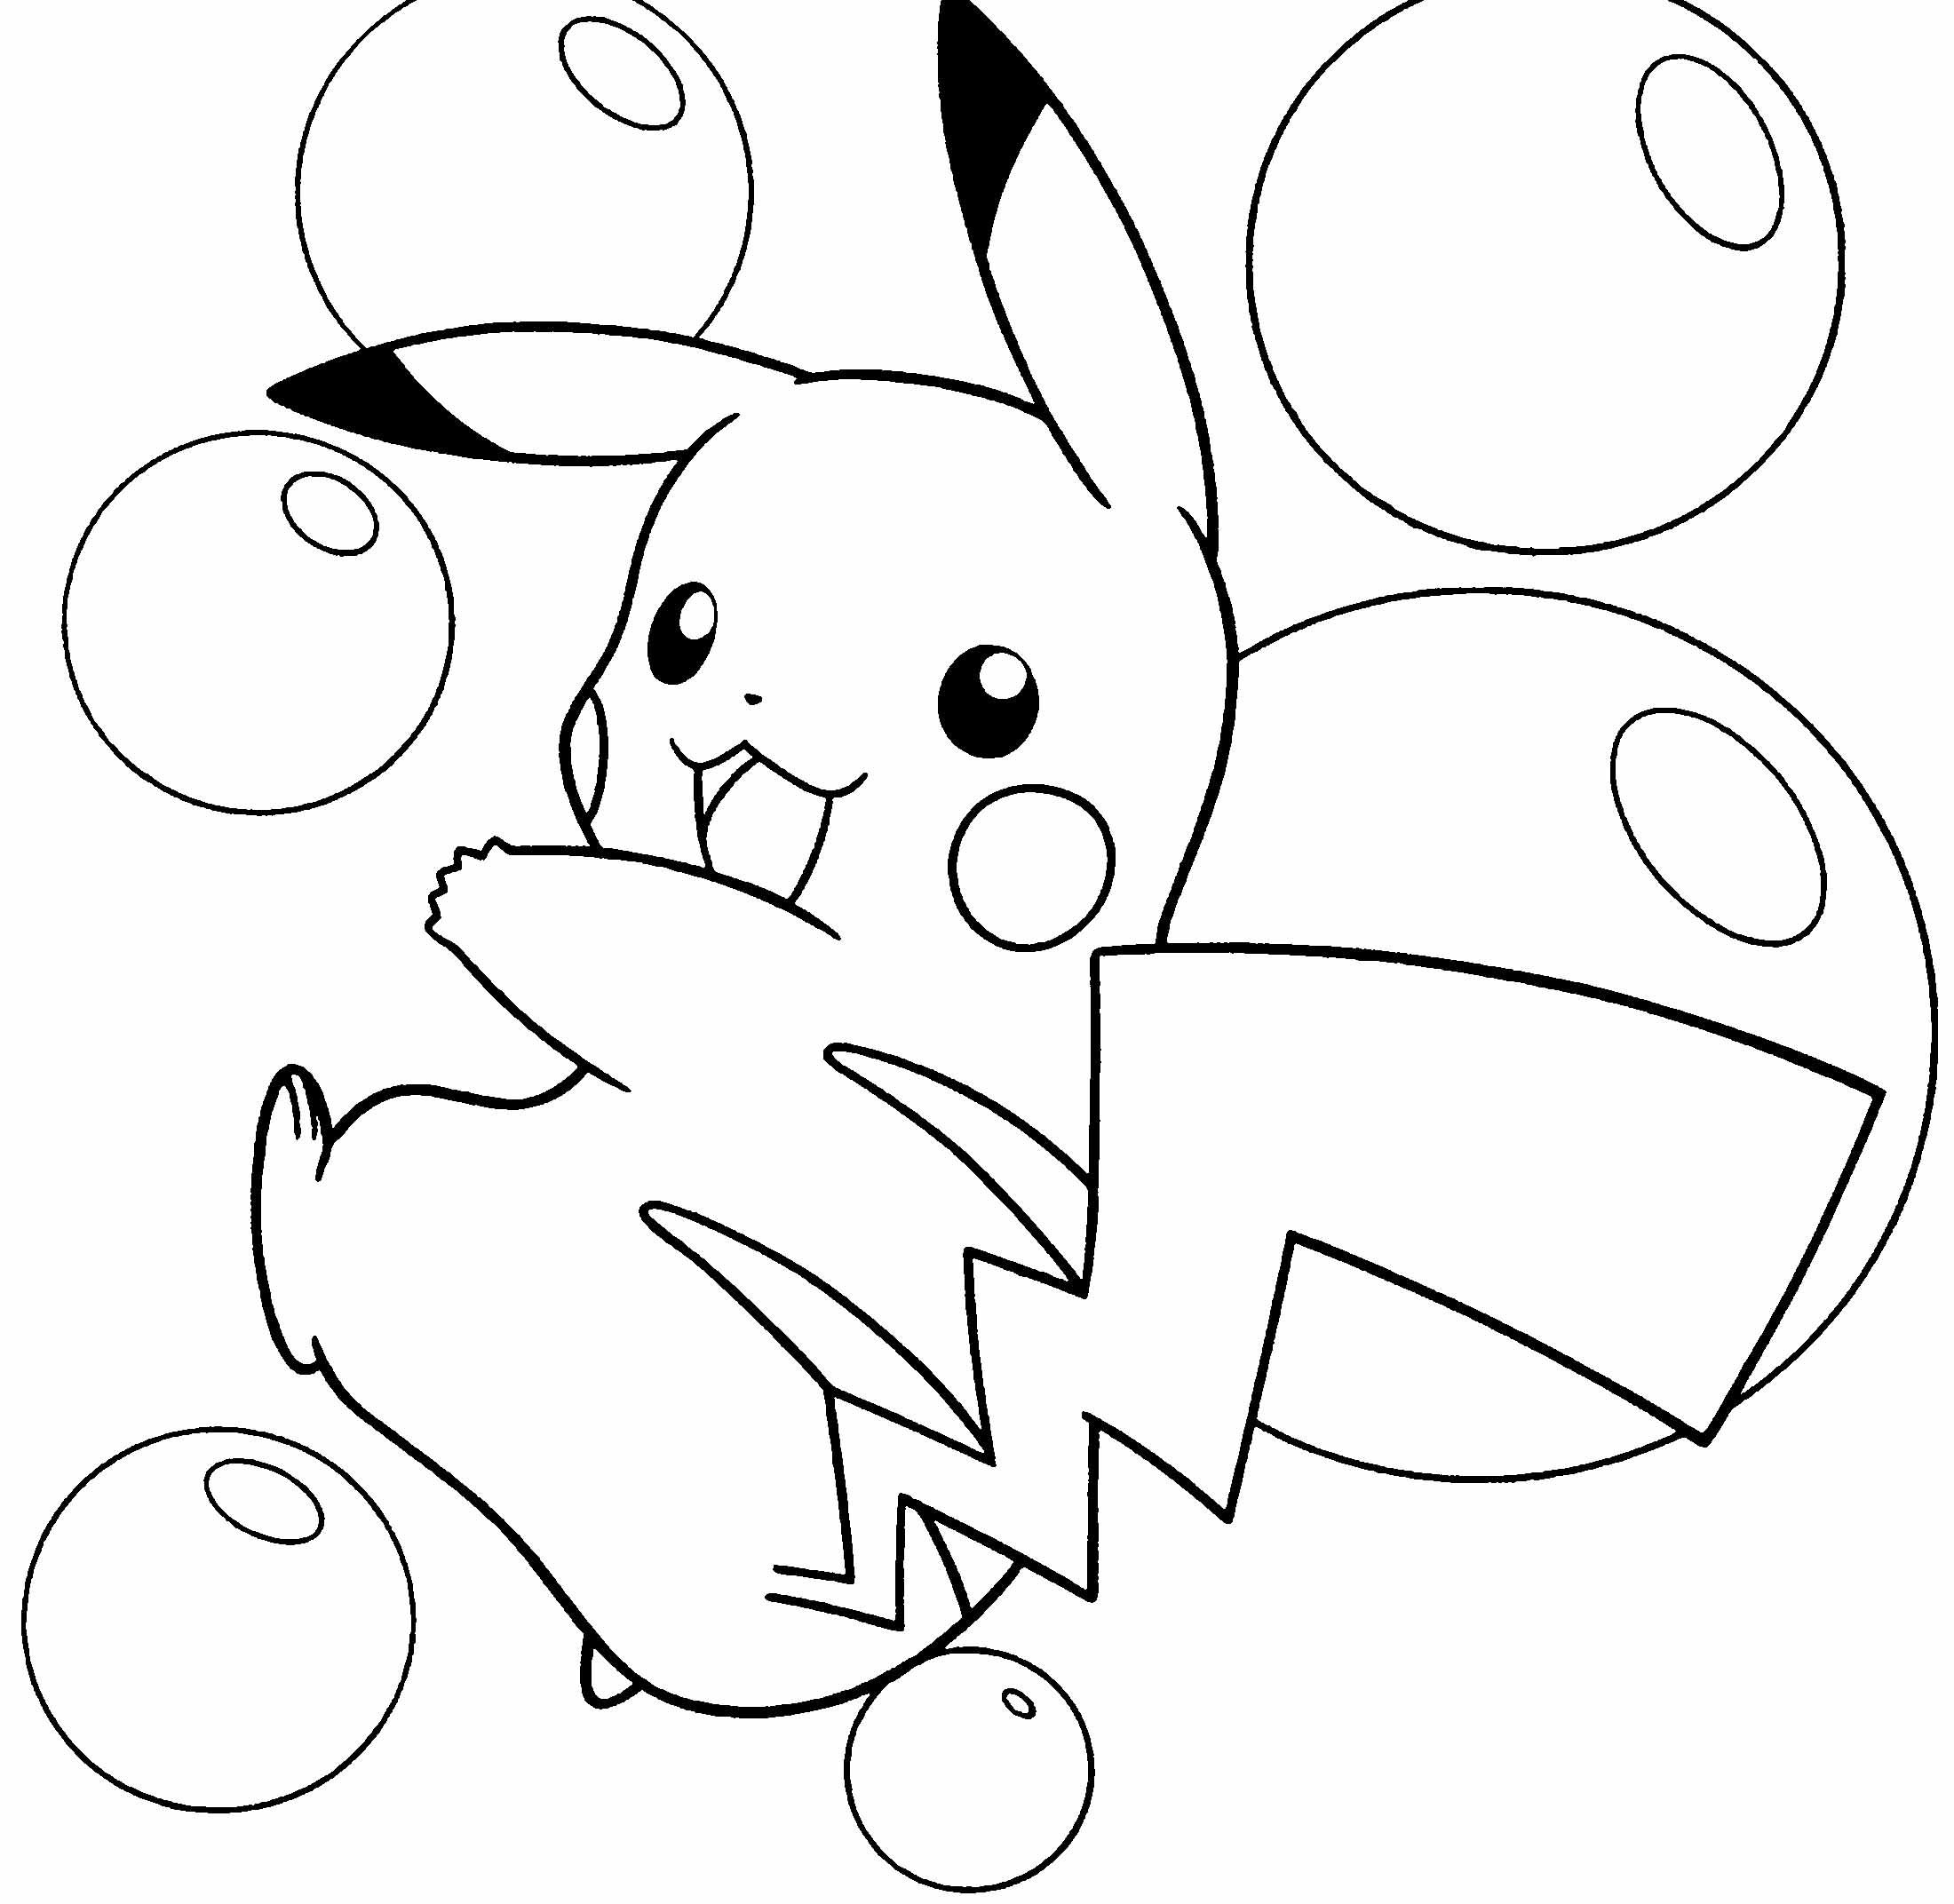 pikachu coloring pages free large images pokemon activities